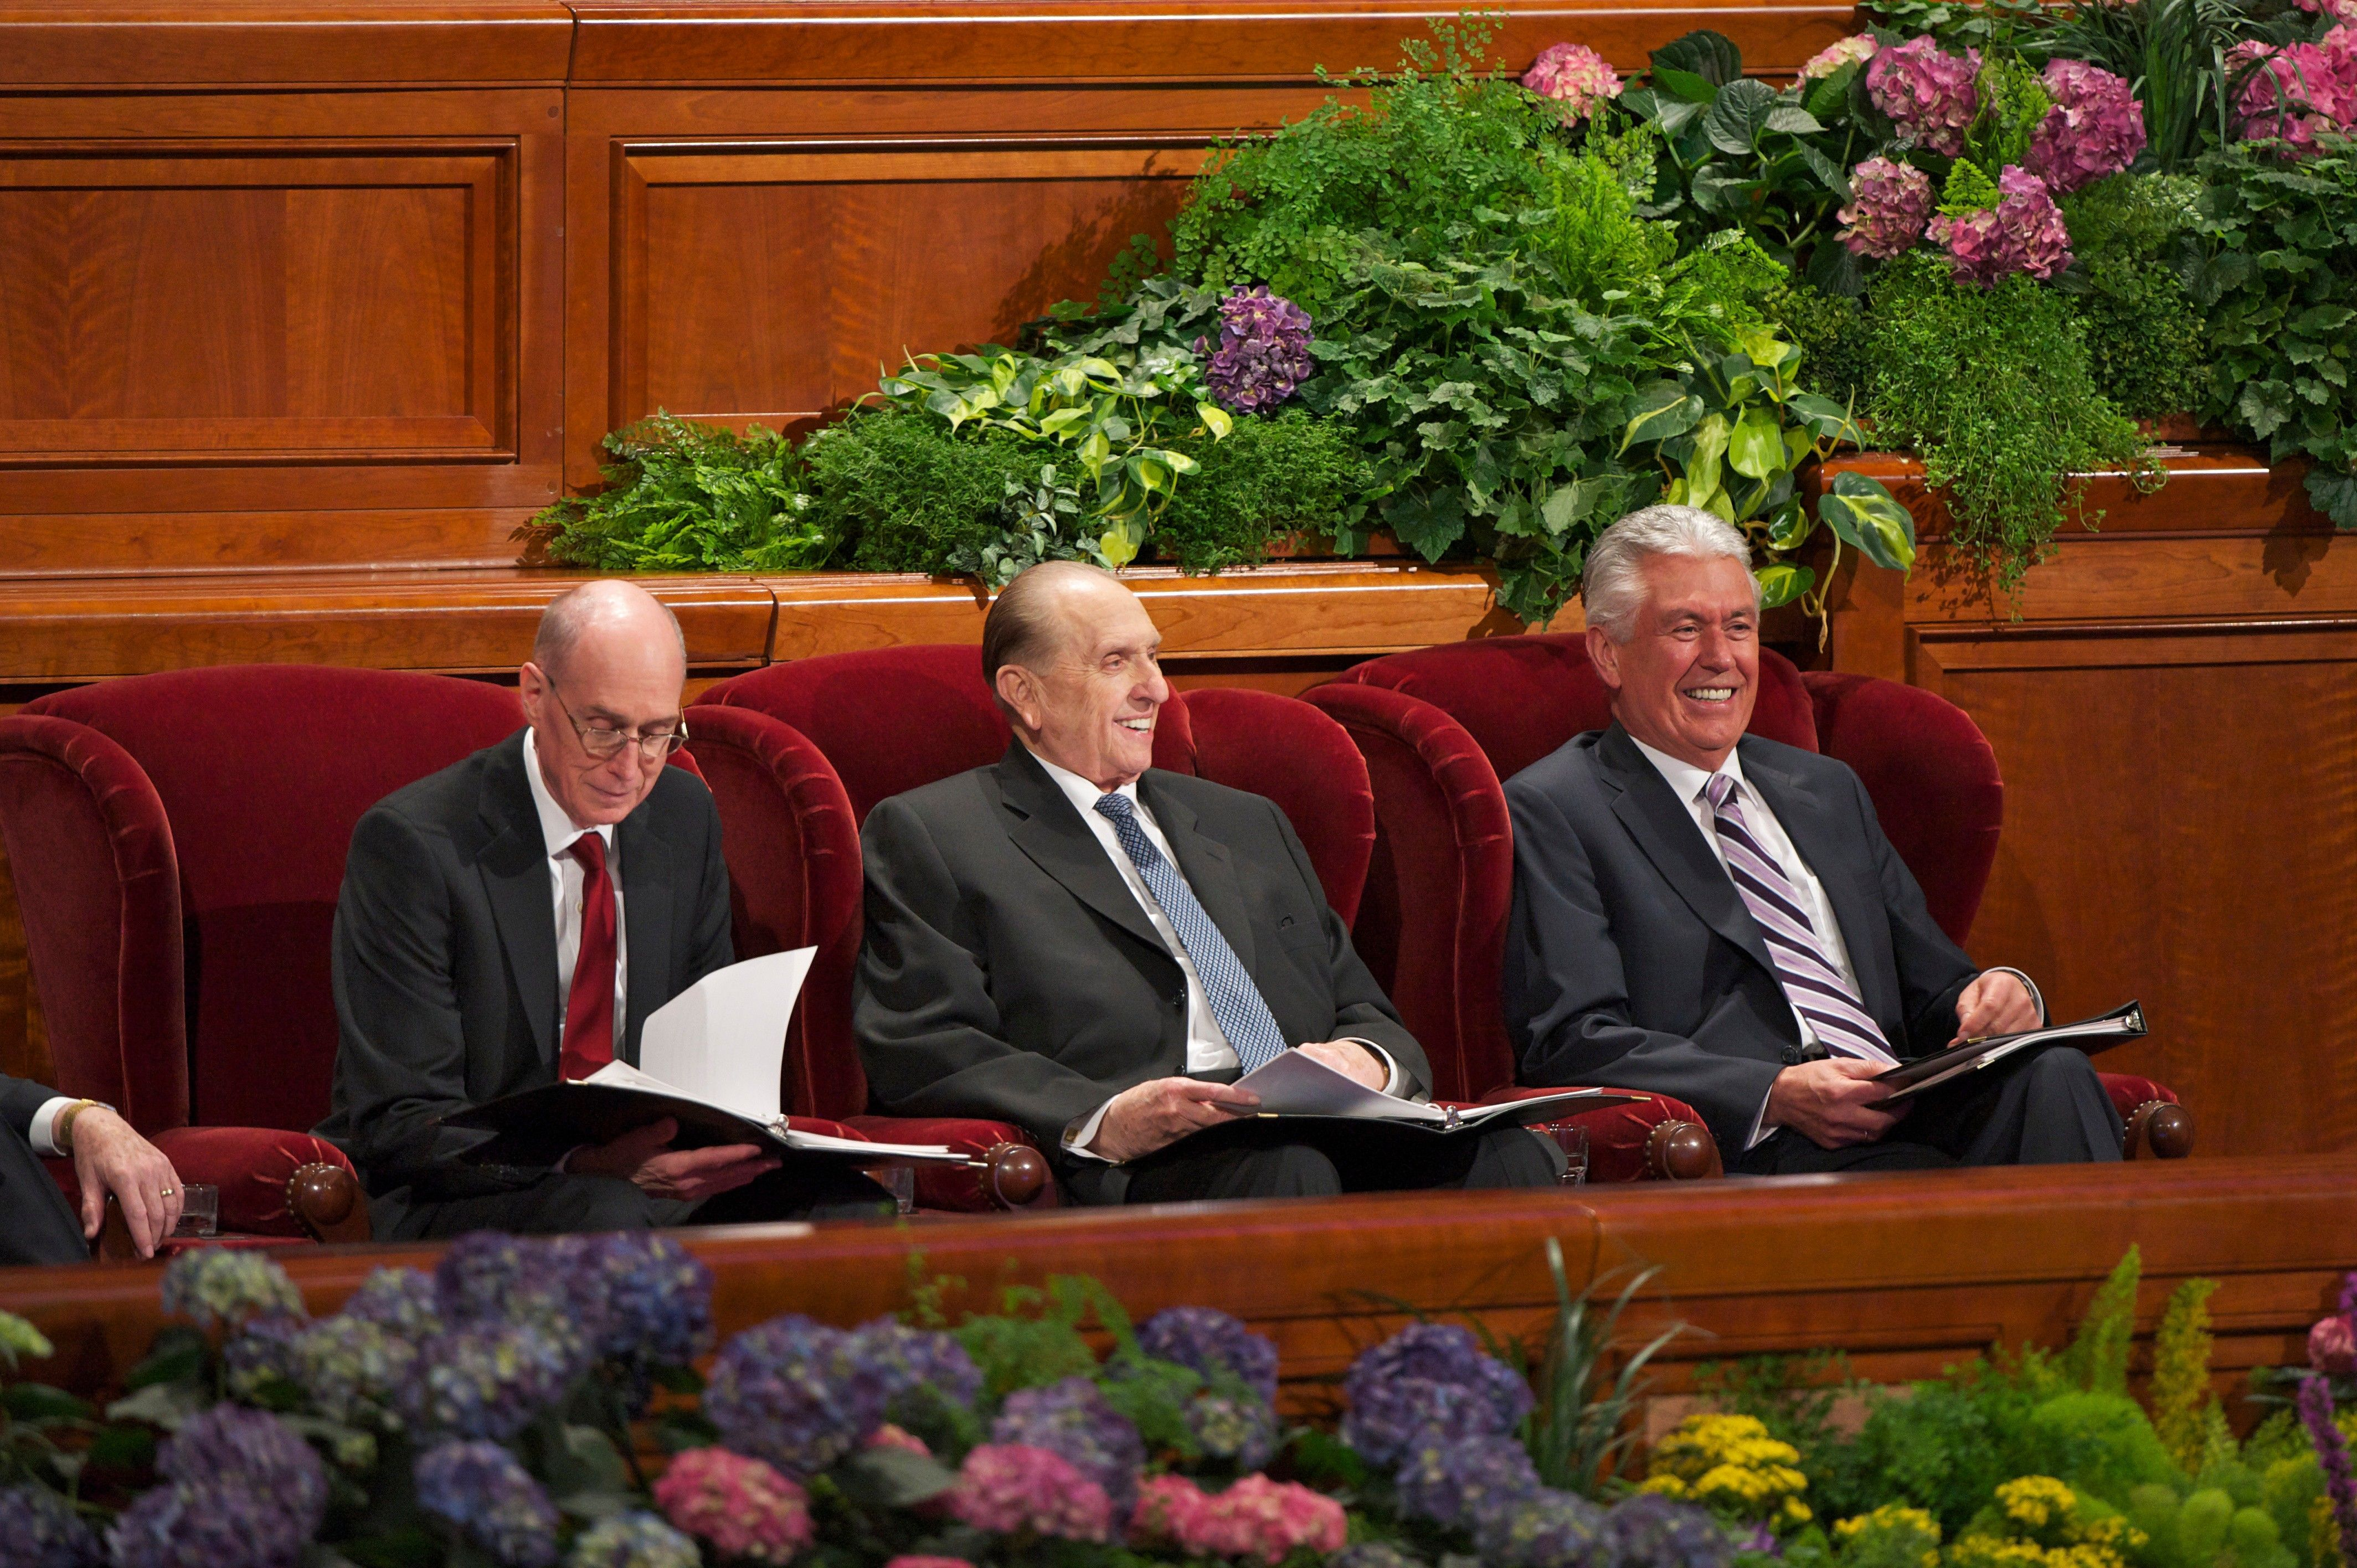 Thomas S. Monson, Dieter F. Uchtdorf, and Henry B. Eyring smiling and sitting in armchairs during general conference.